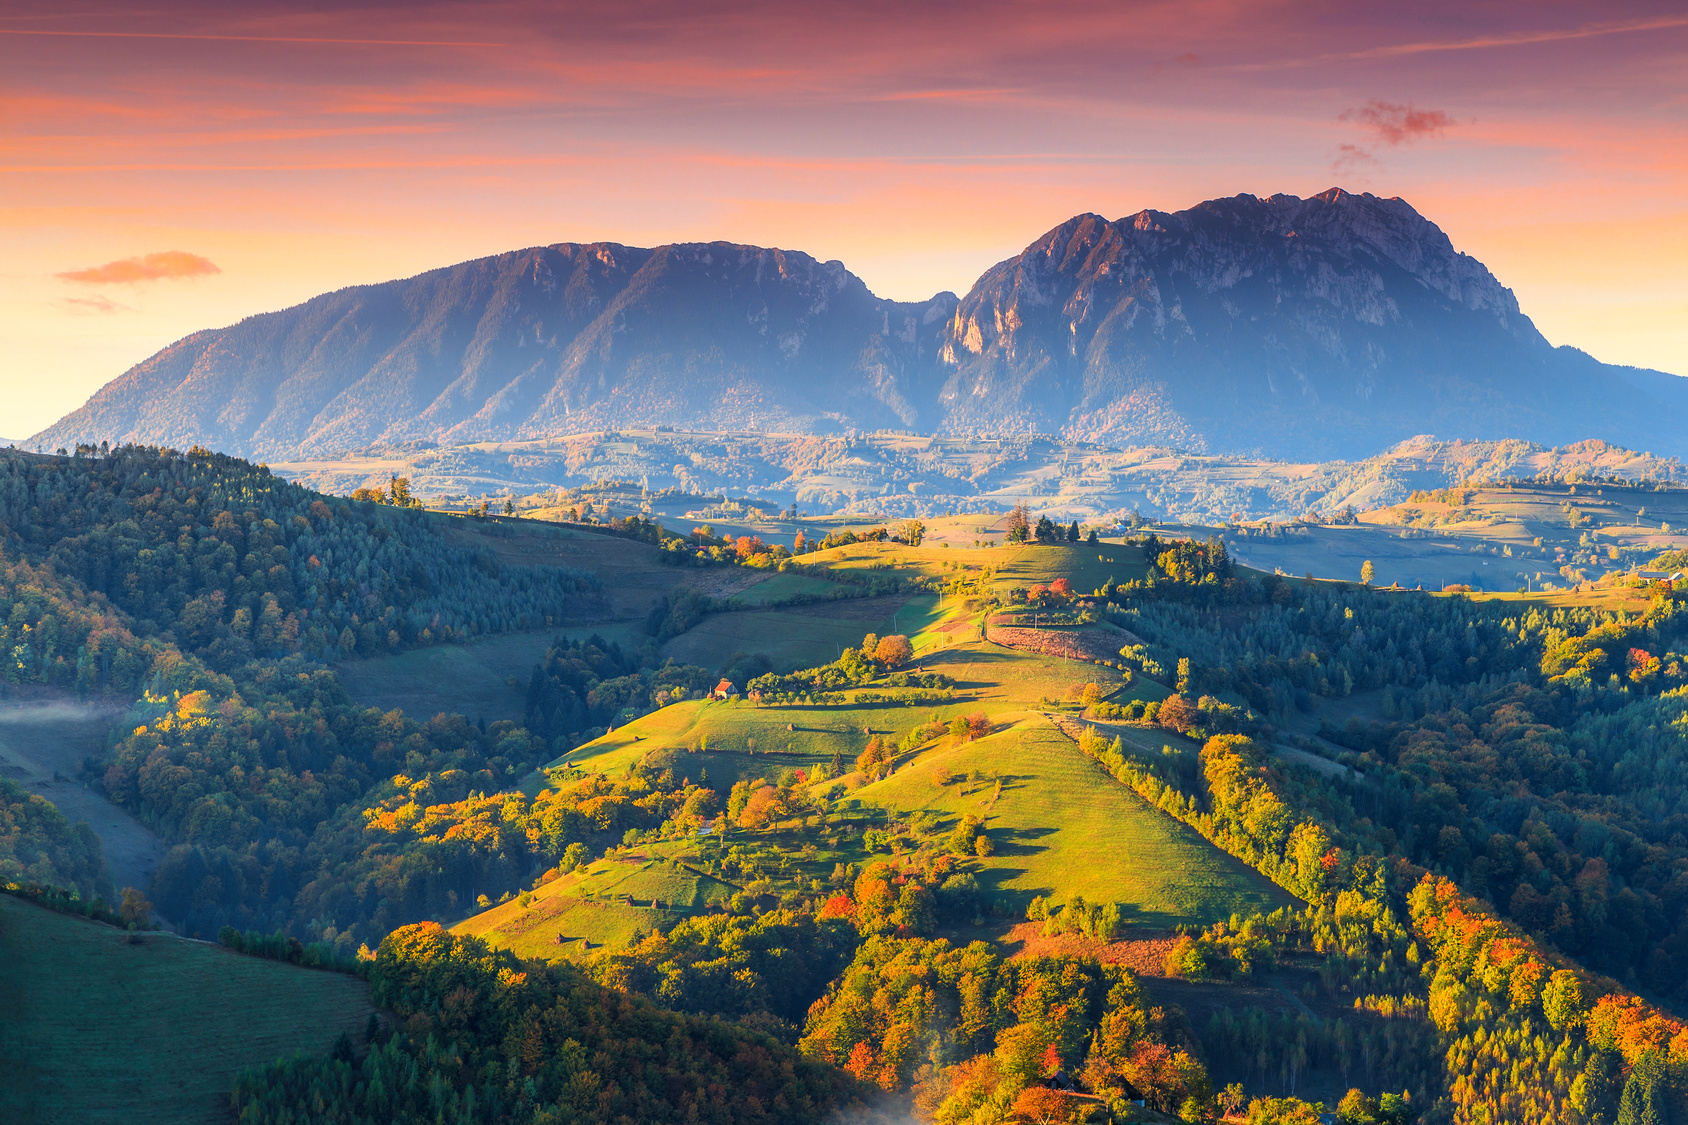 Amazing colorful sunrise with spectacular autumn landscape,Holbav,Transylvania,Romania,Europe